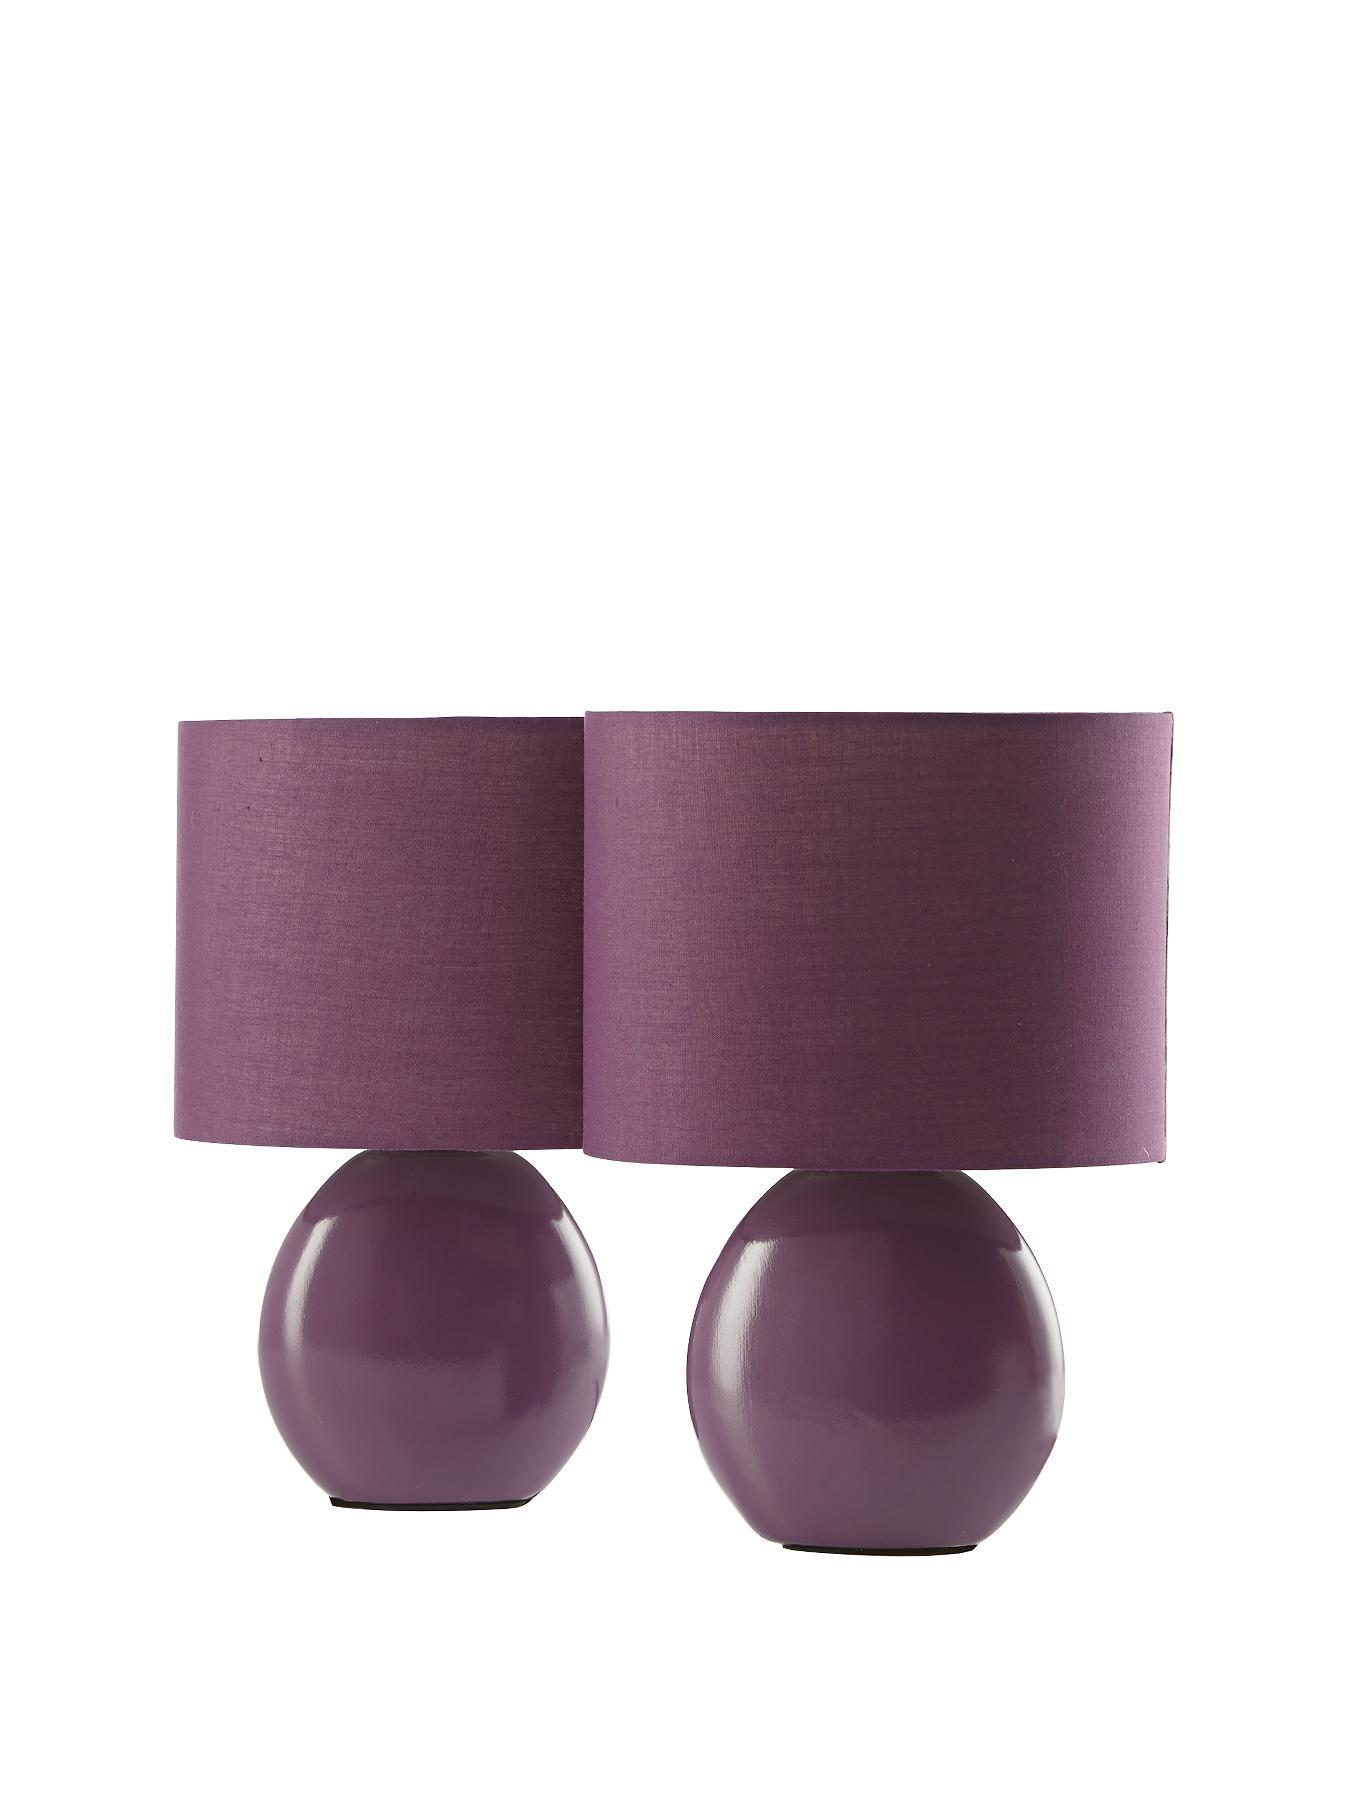 Mia Table Lamps (2 Pack), Red,Ivory,Plum,Chocolate,Black